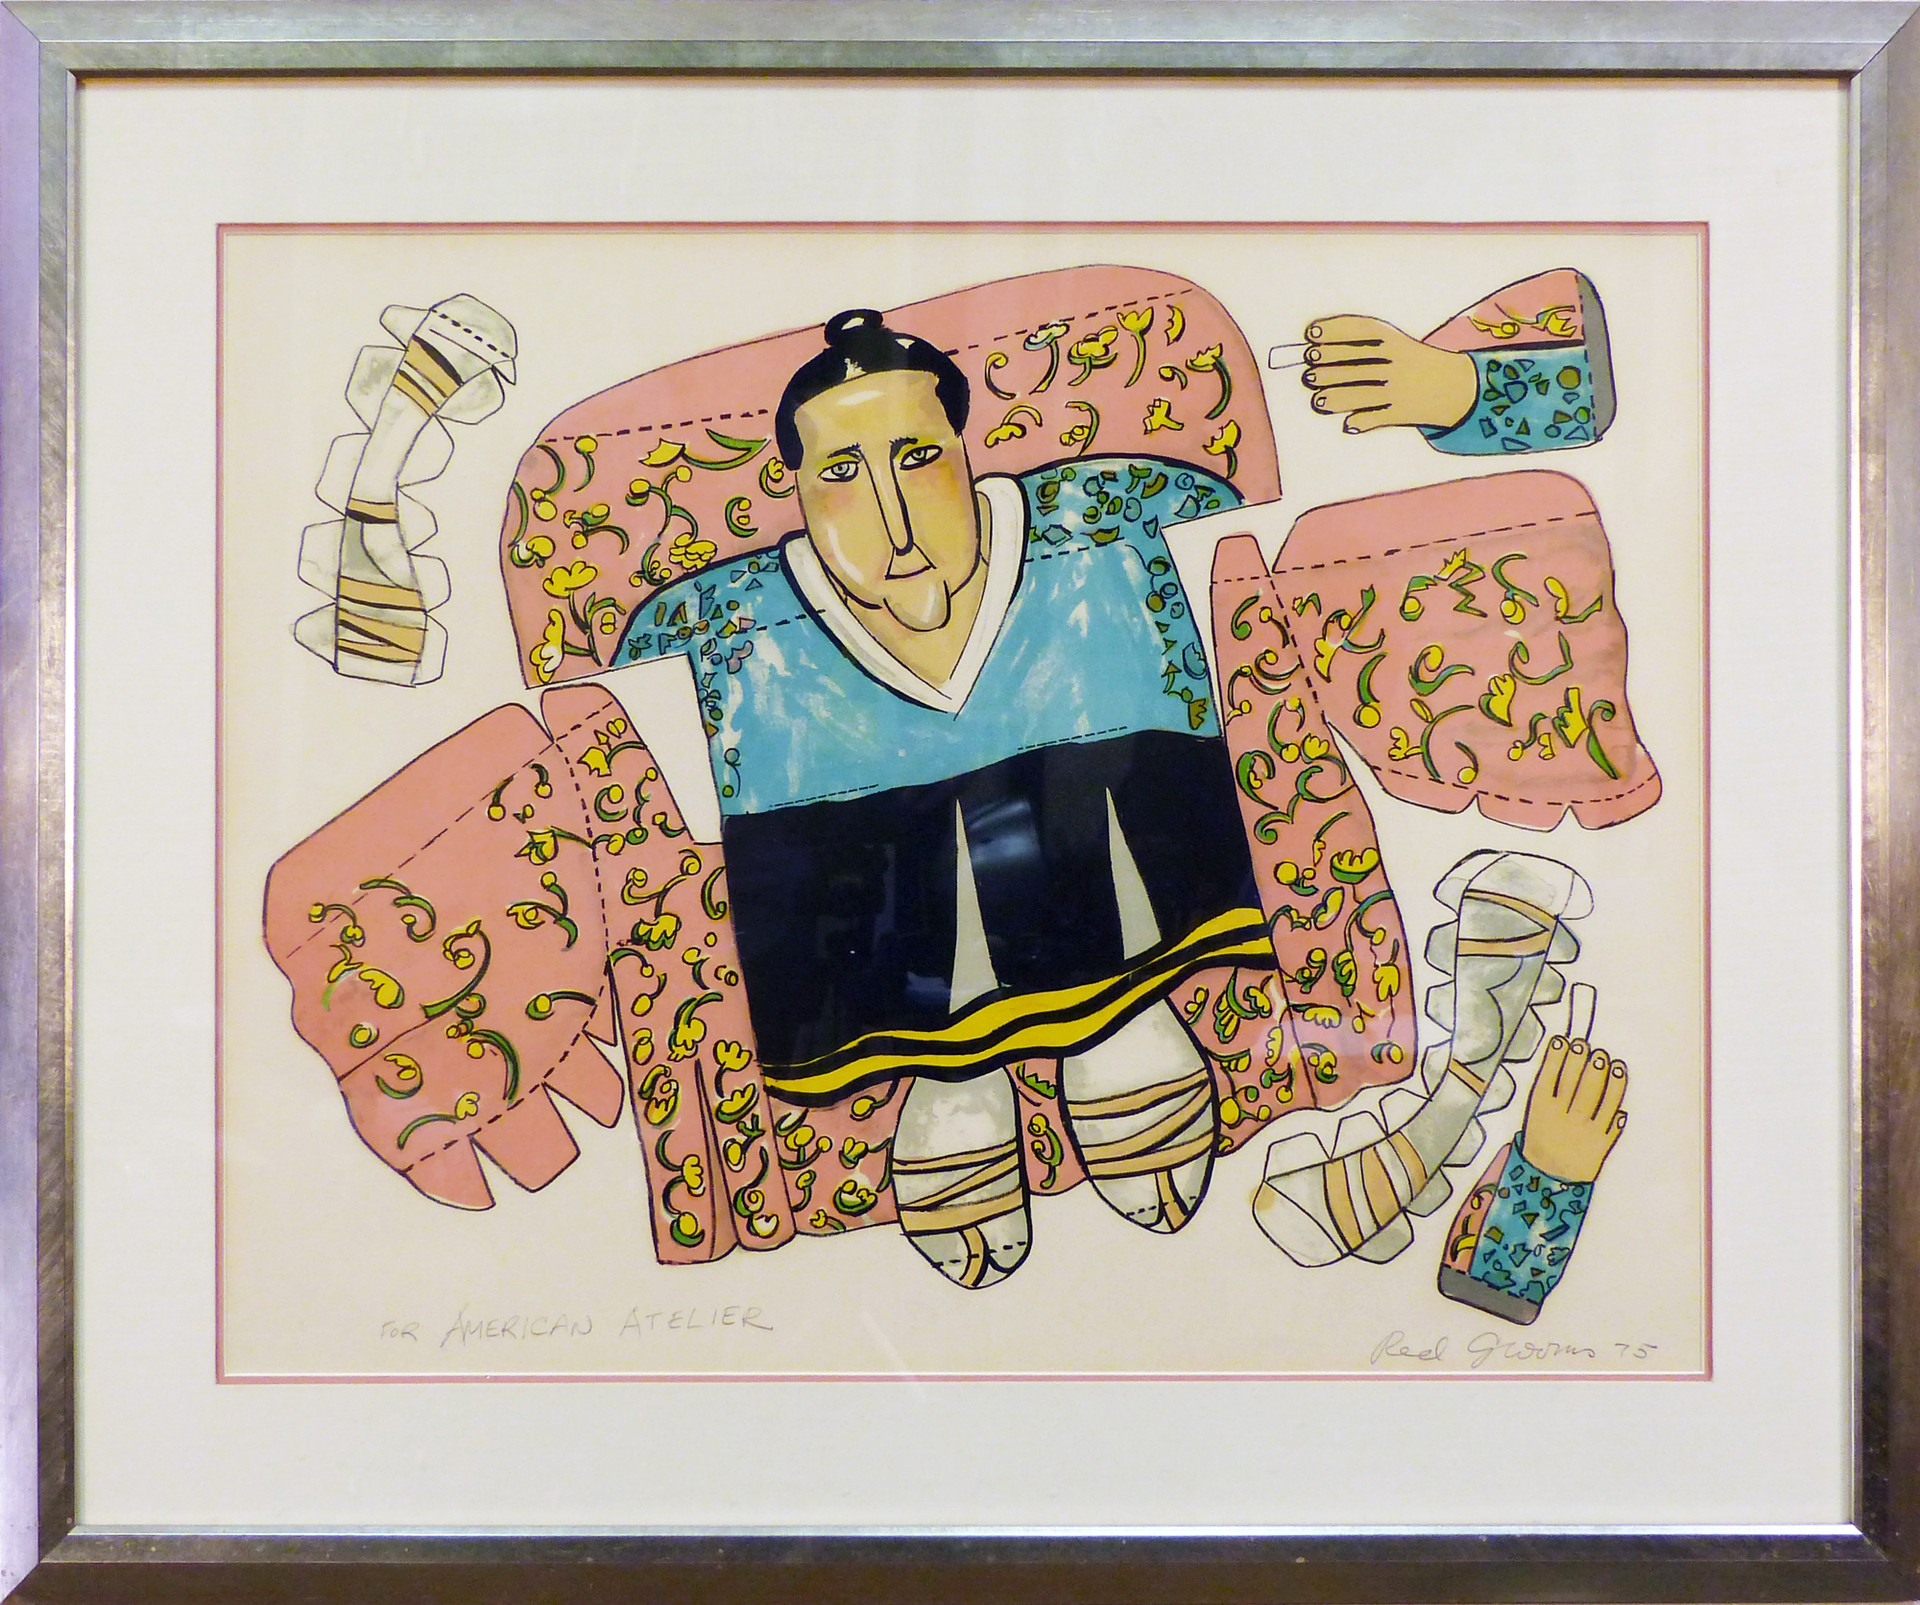 Gertrude Stein 1975 Lithograph 23 x 31 in. 32 x 39 in. framed Hand-signed lower right and dedicated to the American Atelier